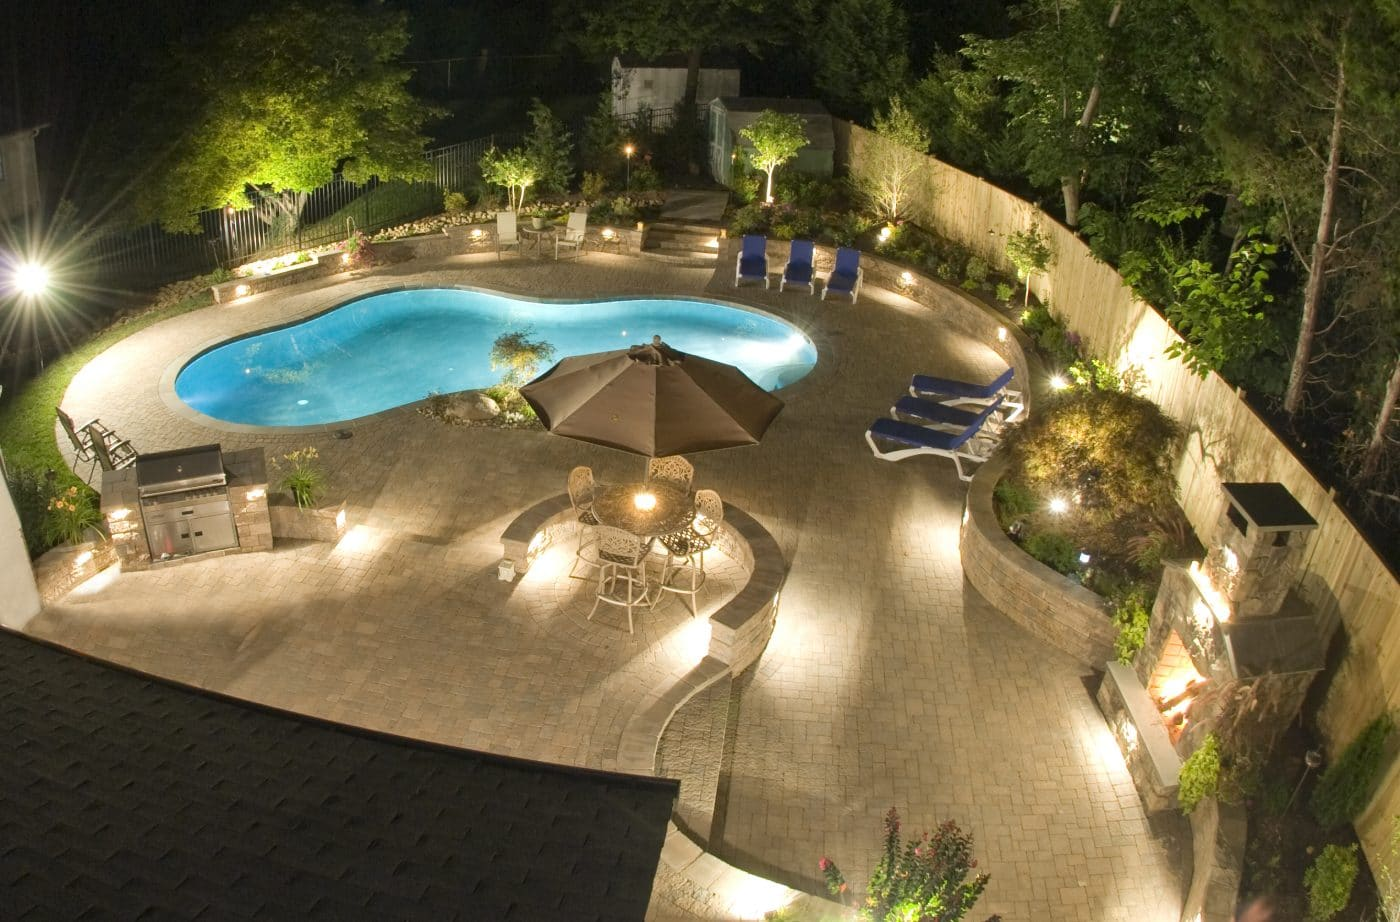 Landscaping Company Contractor Chantilly, VA 20152 on Allgreen Outdoor Living id=26899